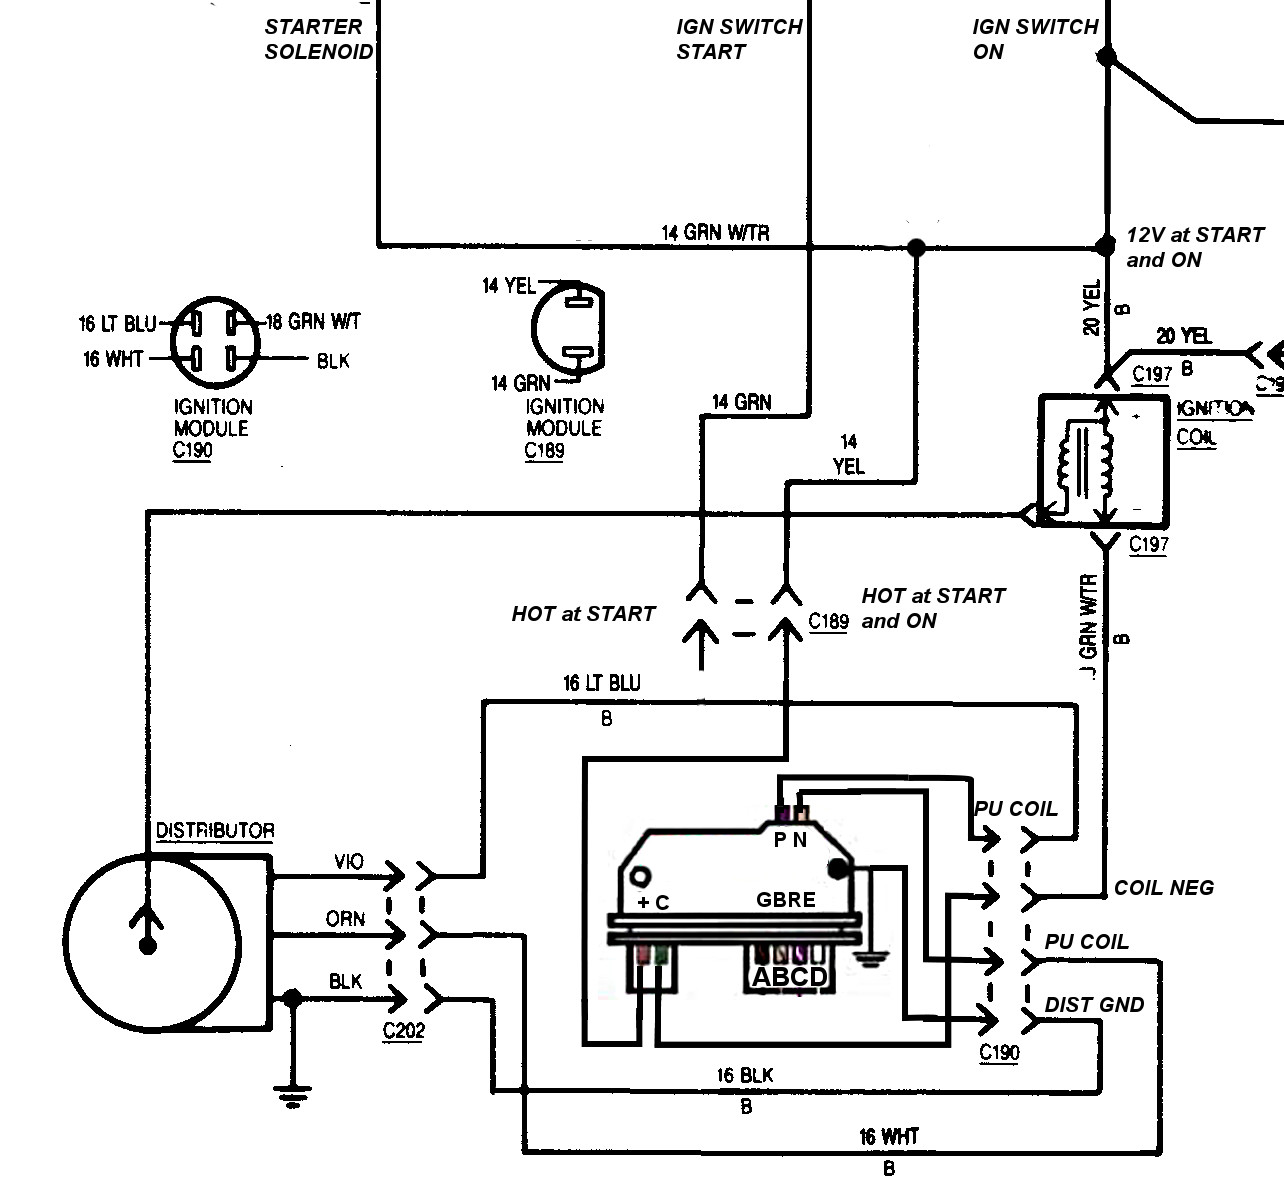 module wiring diagram as well amc ignition module wiring diagram – wiring